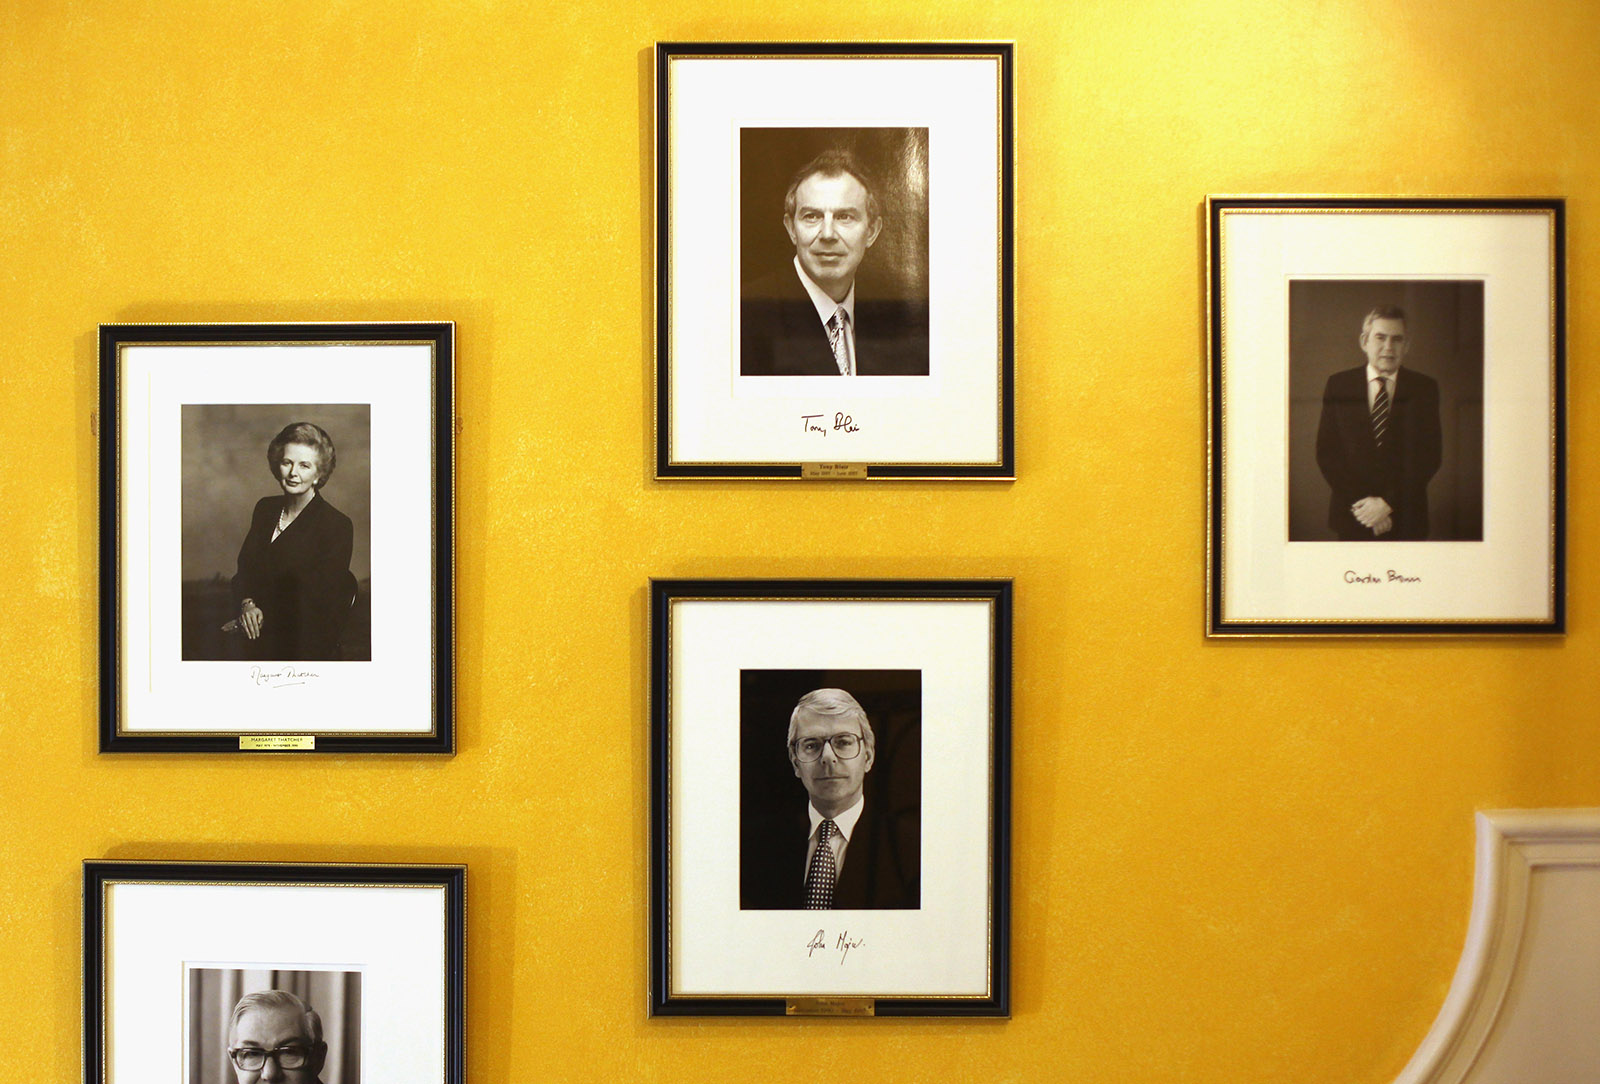 Photo portraits of former British prime ministers